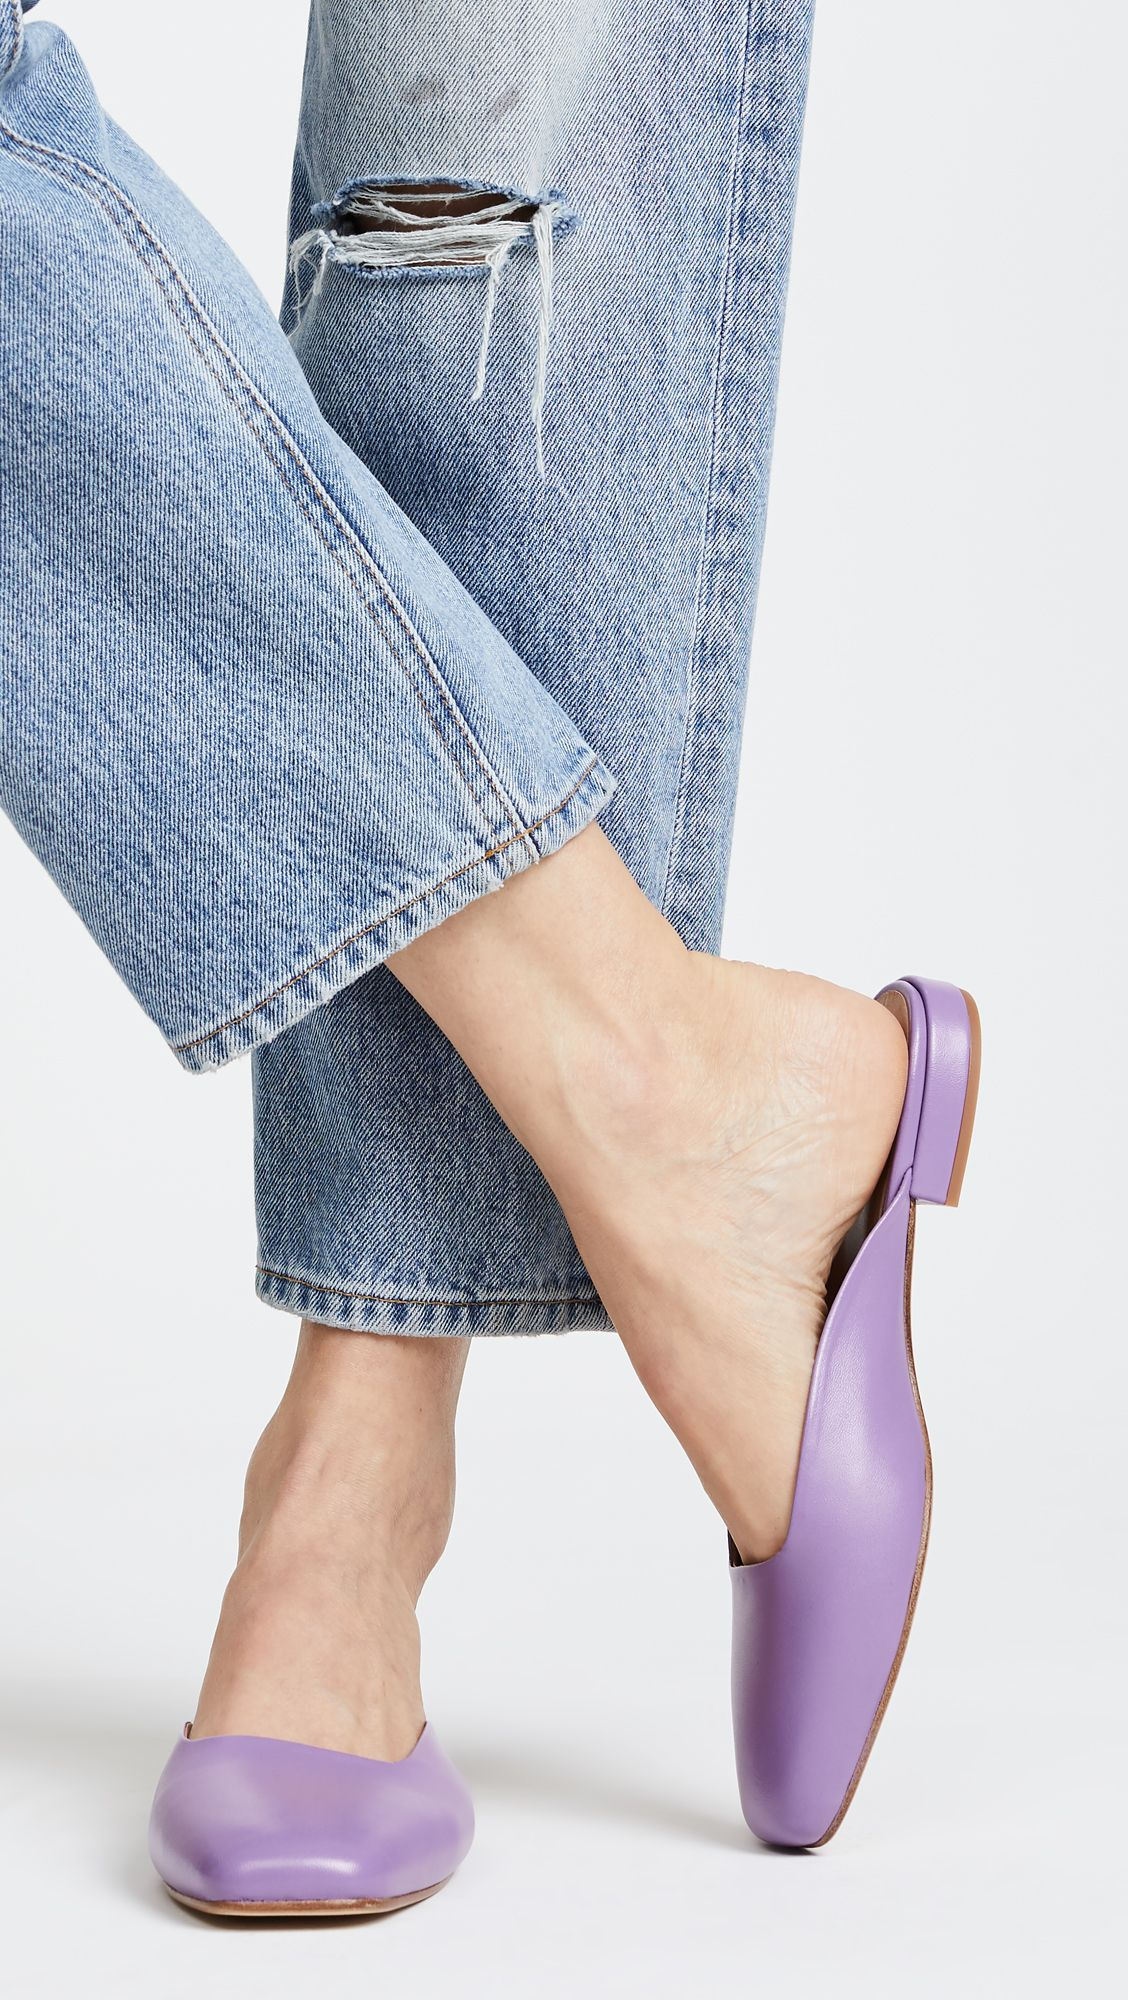 Lavender Leather Mules | Me too shoes